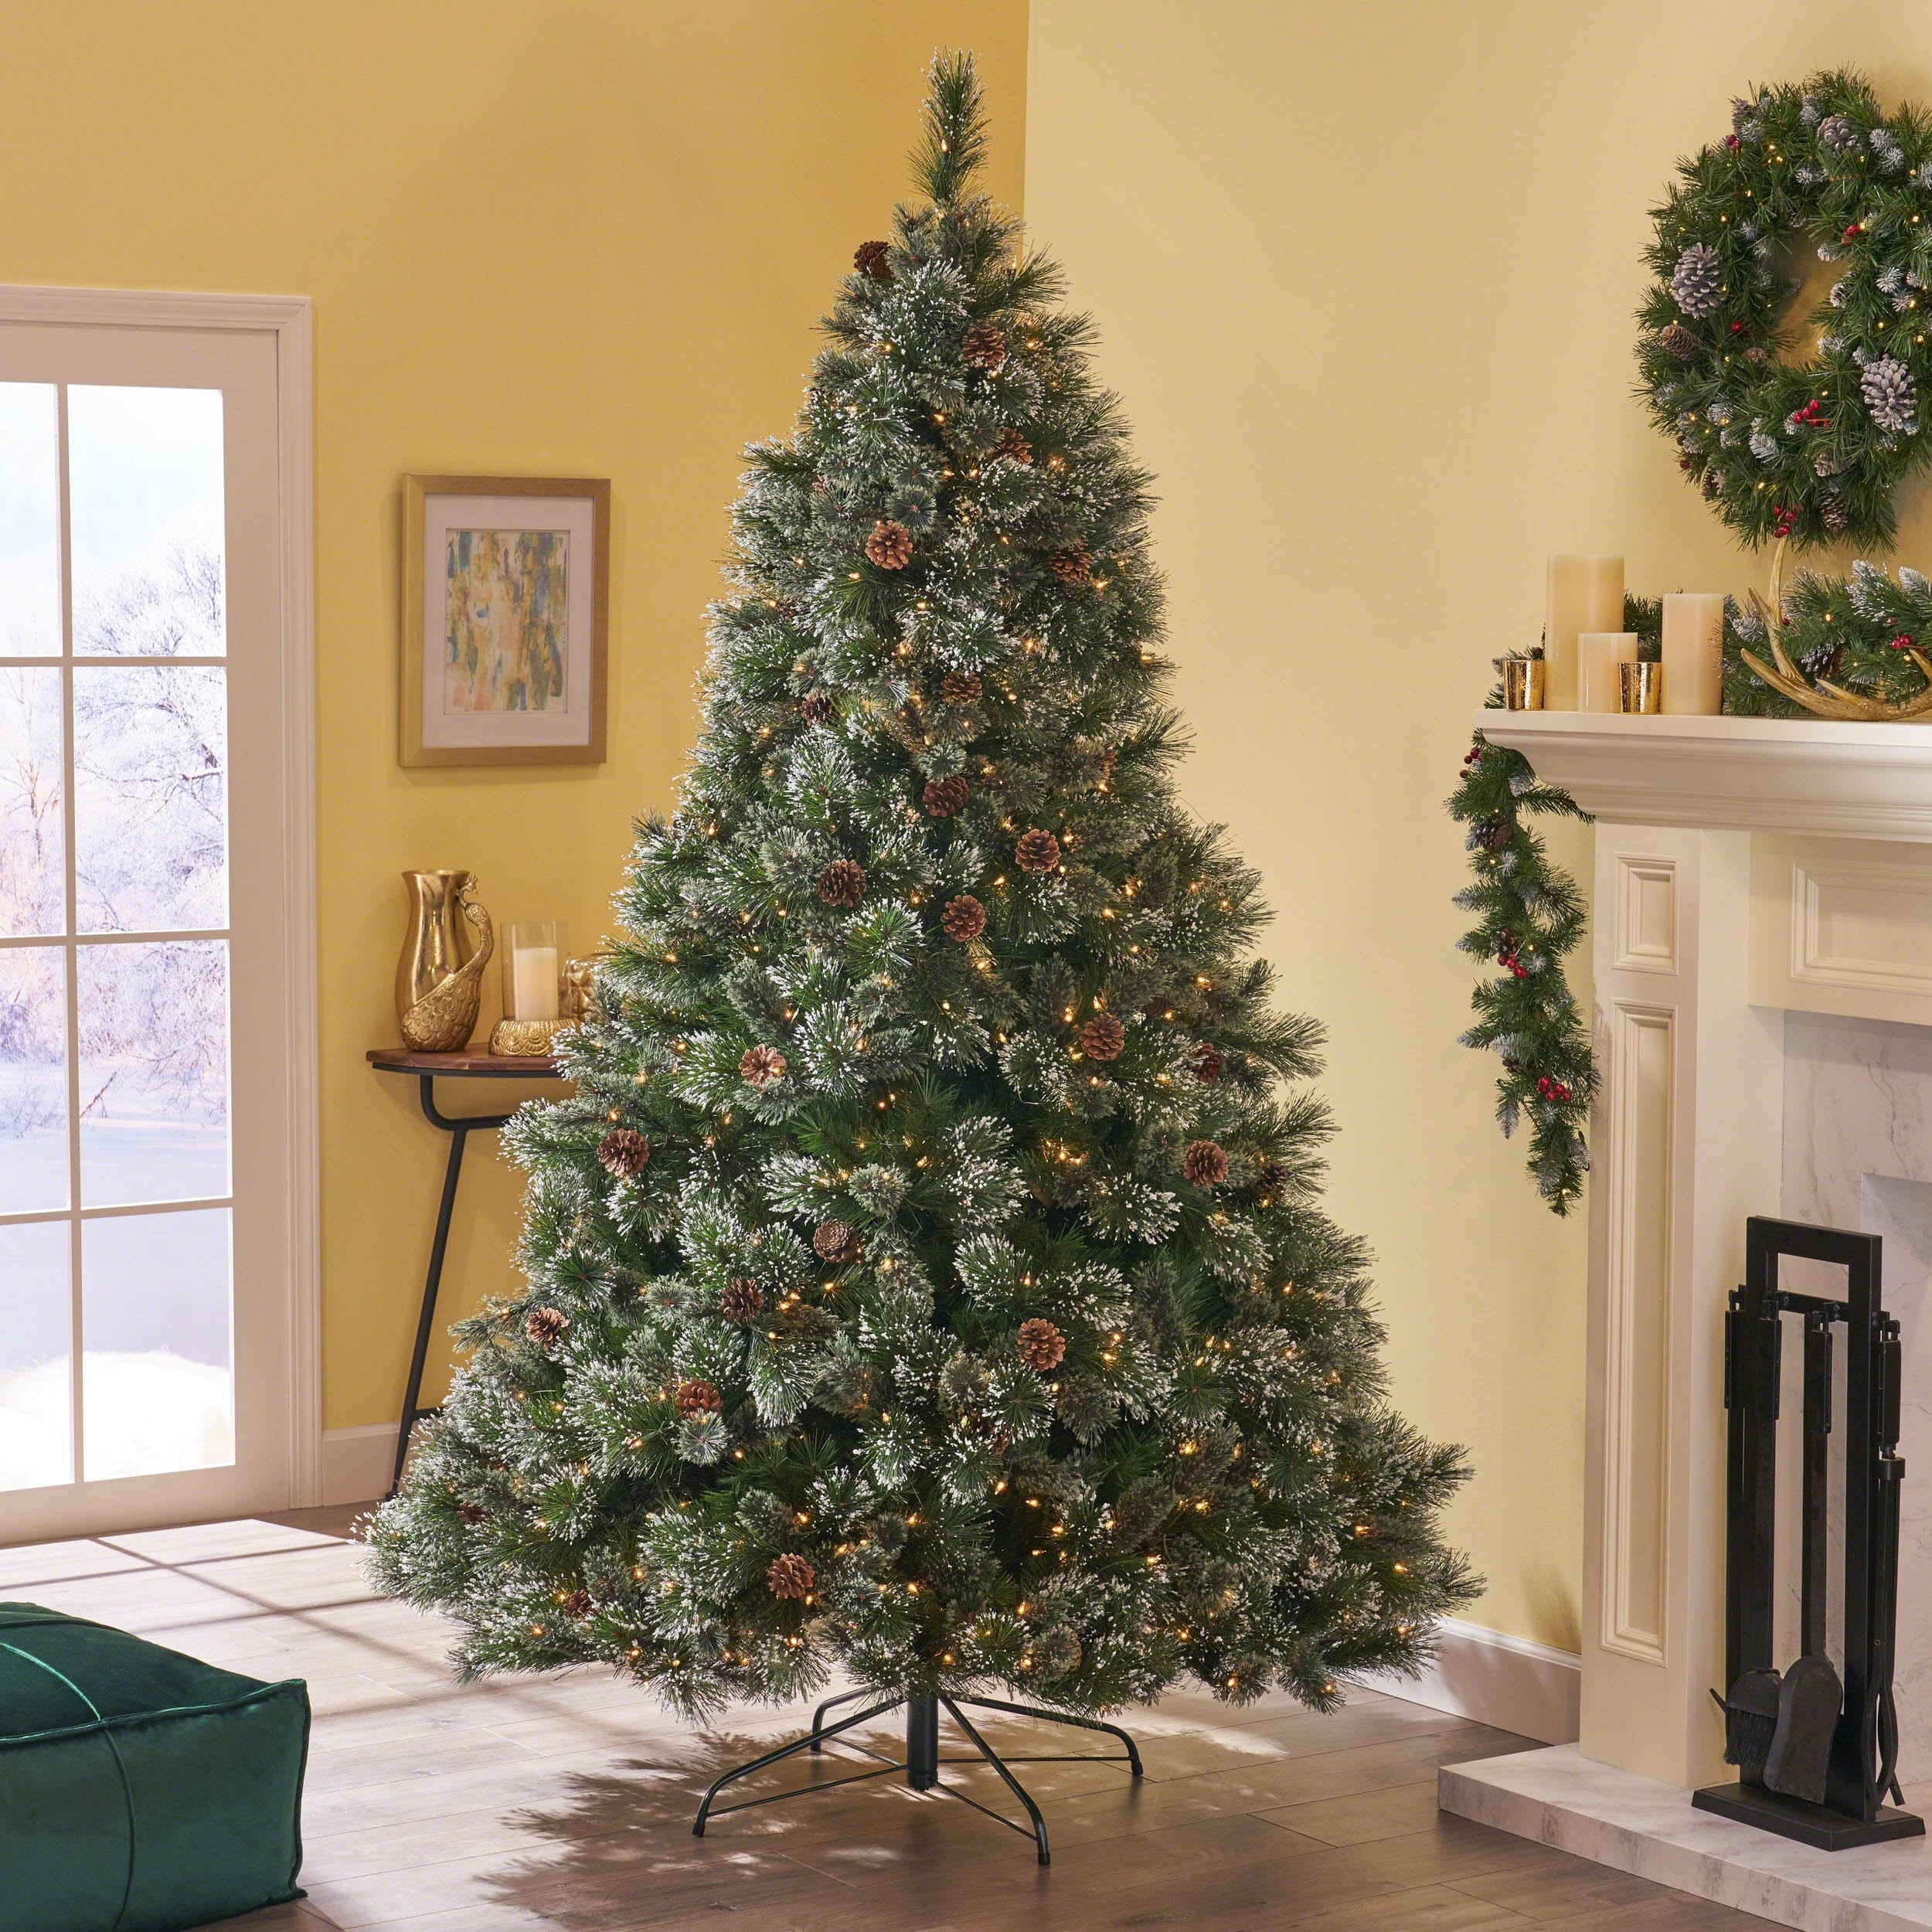 7ft Cashmere Pre Lit Unlit Or Multi Colored Artificial Christmas Tree W Snowy Branches Pinecones By Christopher Knight Home Overstock 24196757